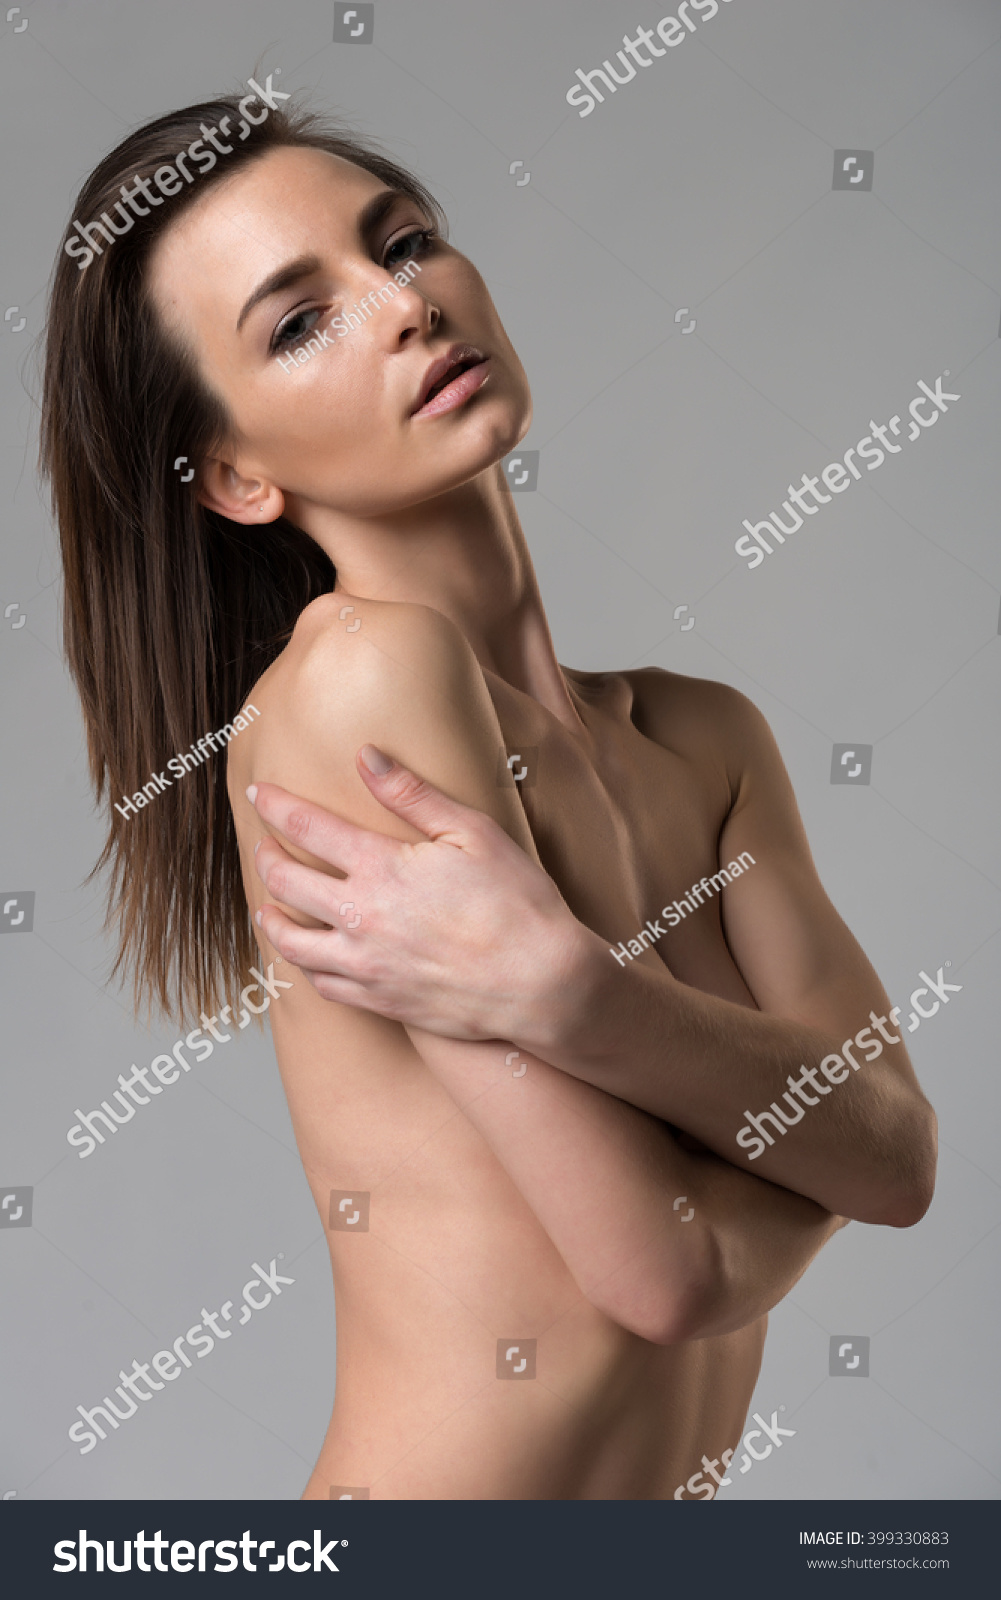 beautiful slender italian woman nude on stock photo & image (royalty